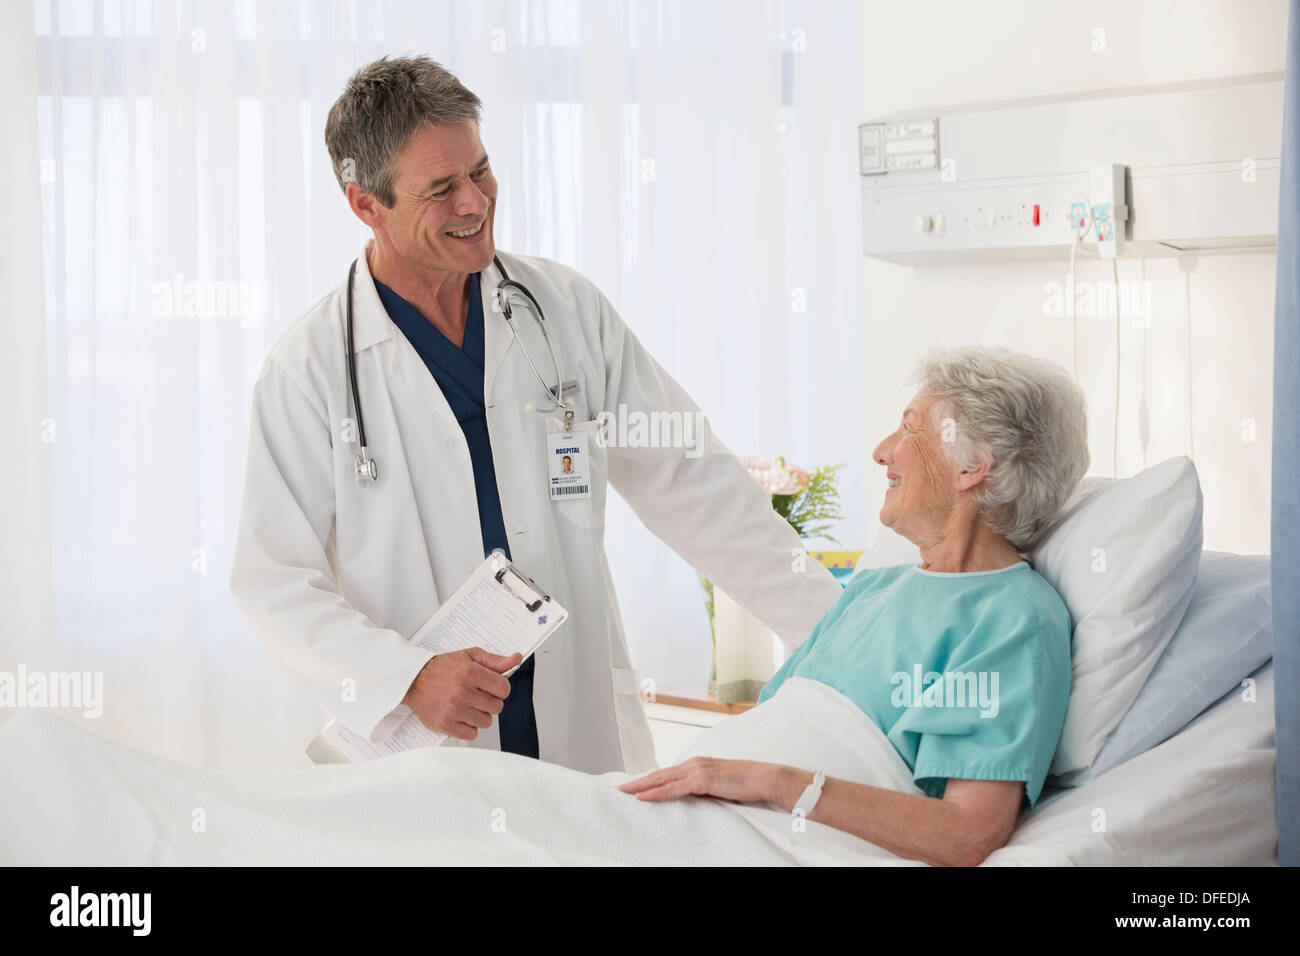 Doctor talking to elderly patient in hospital - Stock Image